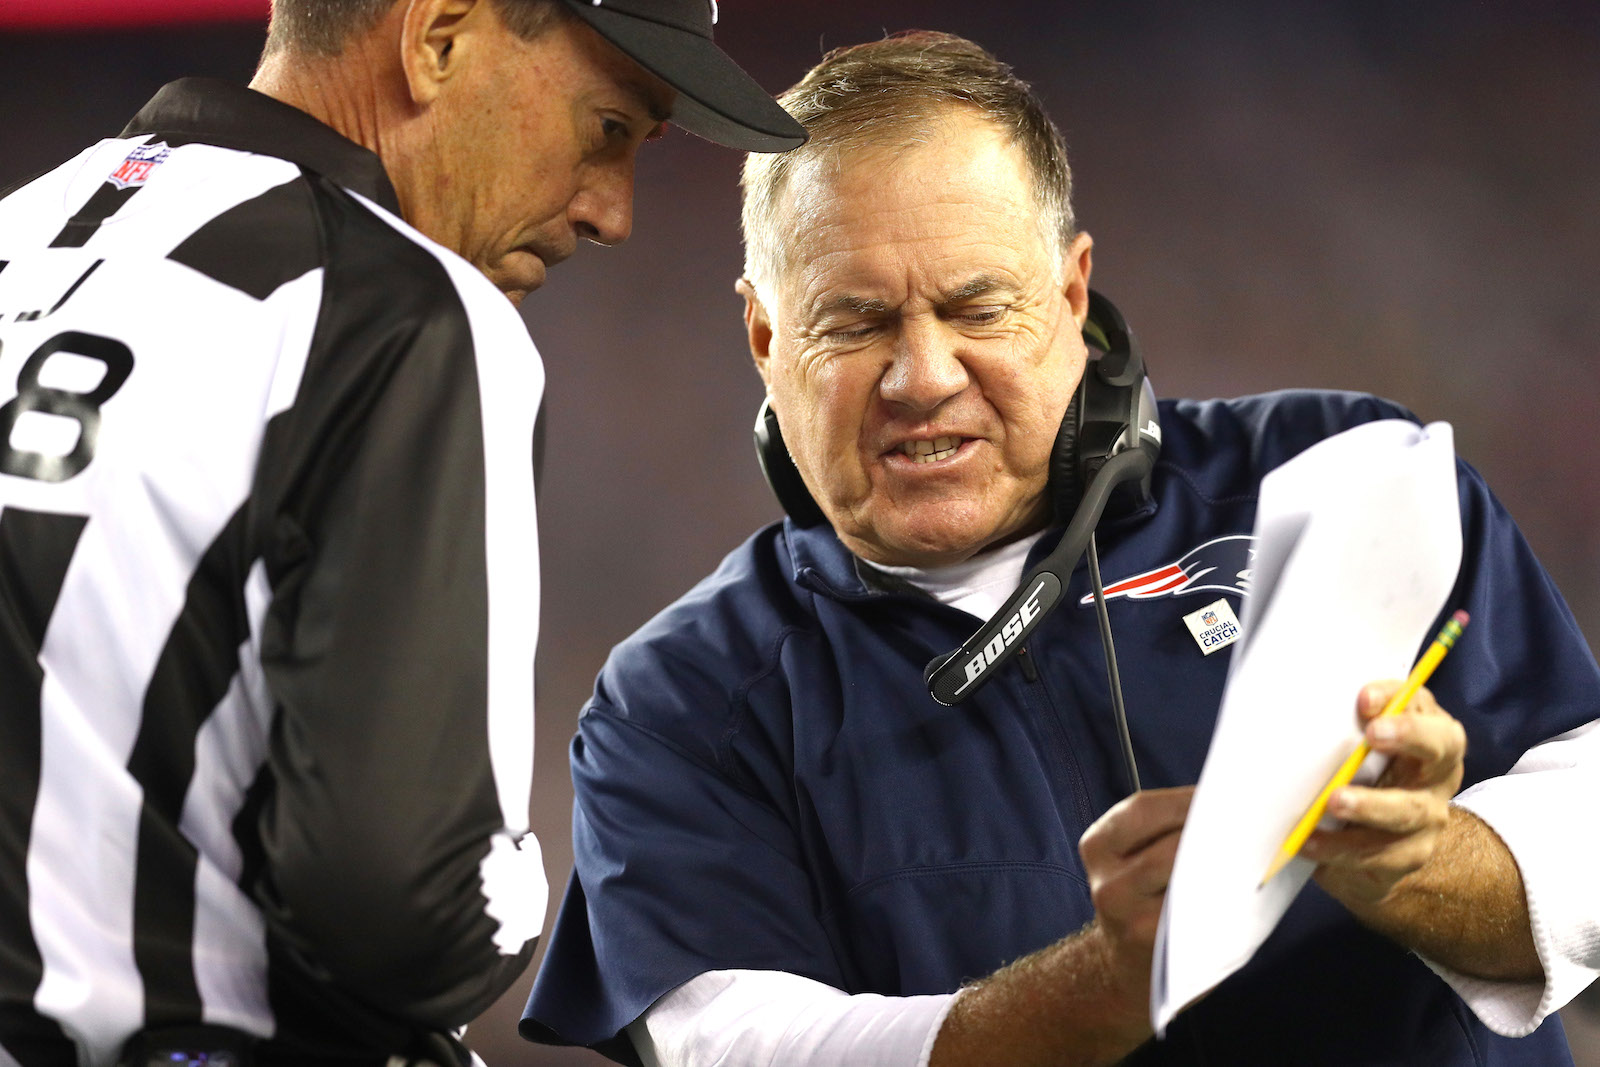 NFL head coach Bill Belichick of the New England Patriots speaks with a referee during a game against the Atlanta Falcons at Gillette Stadium on October 22, 2017. (Maddie Meyer/Getty Images)